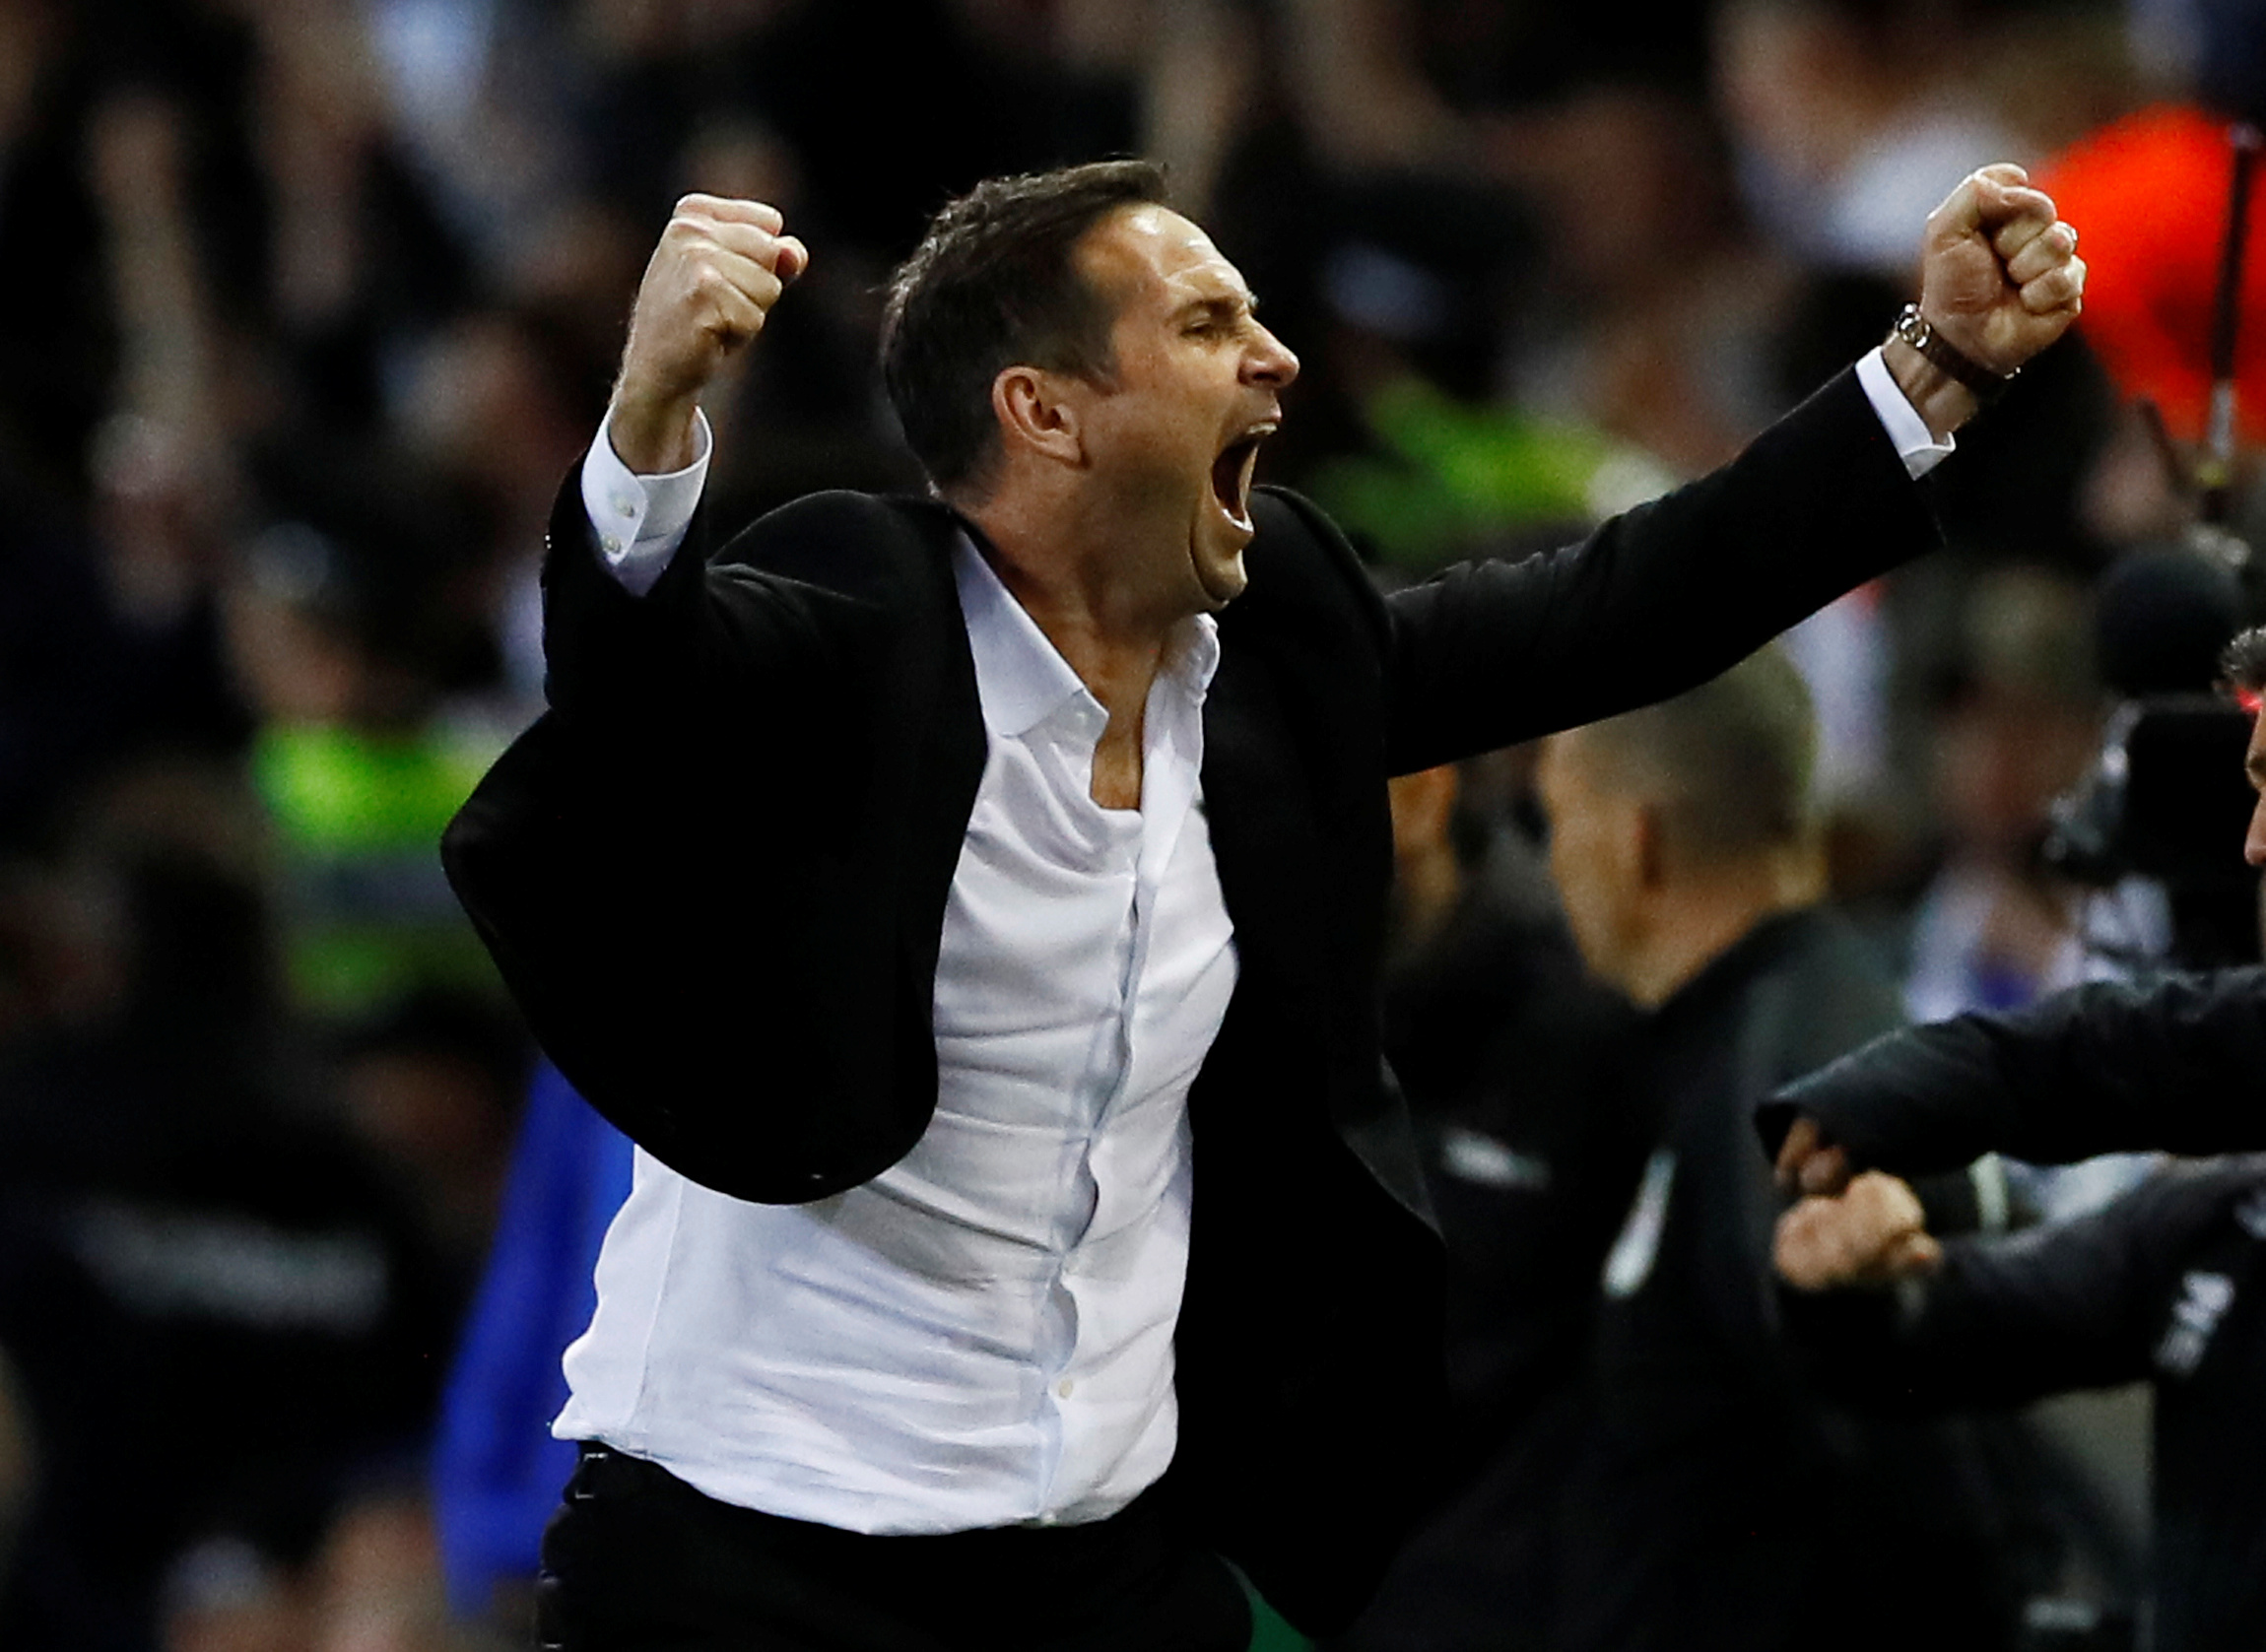 Soccer Football - Championship Play-Off Semi Final Second Leg - Leeds United v Derby County - Elland Road, Leeds, Britain - May 15, 2019   Derby County manager Frank Lampard celebrates after the match            Action Images via Reuters/Jason Cairnduff